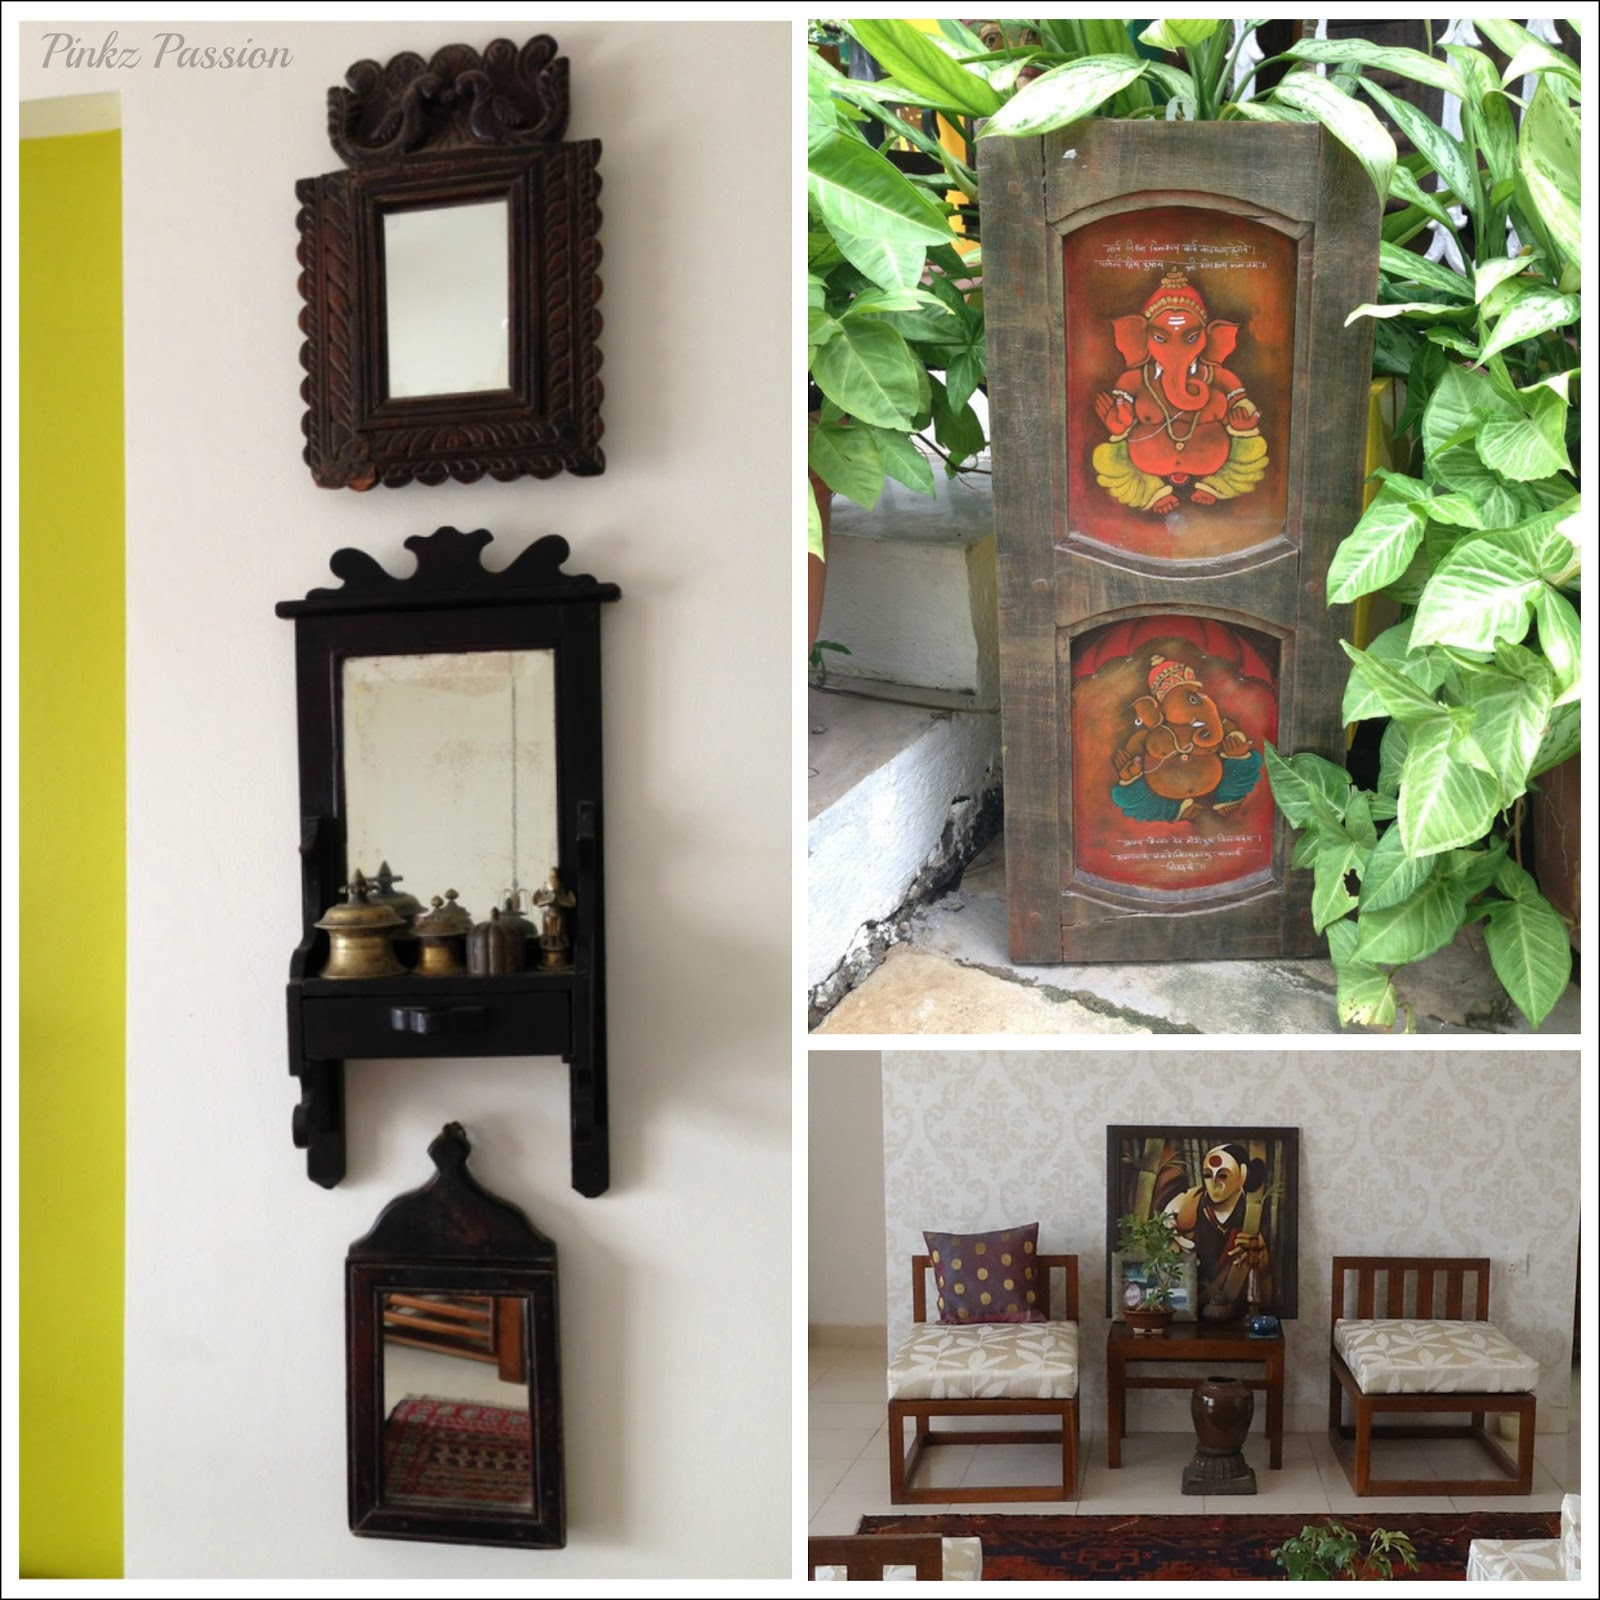 Pinkz passion sanskriti lifestyle featured shop for Ethnic decorations home